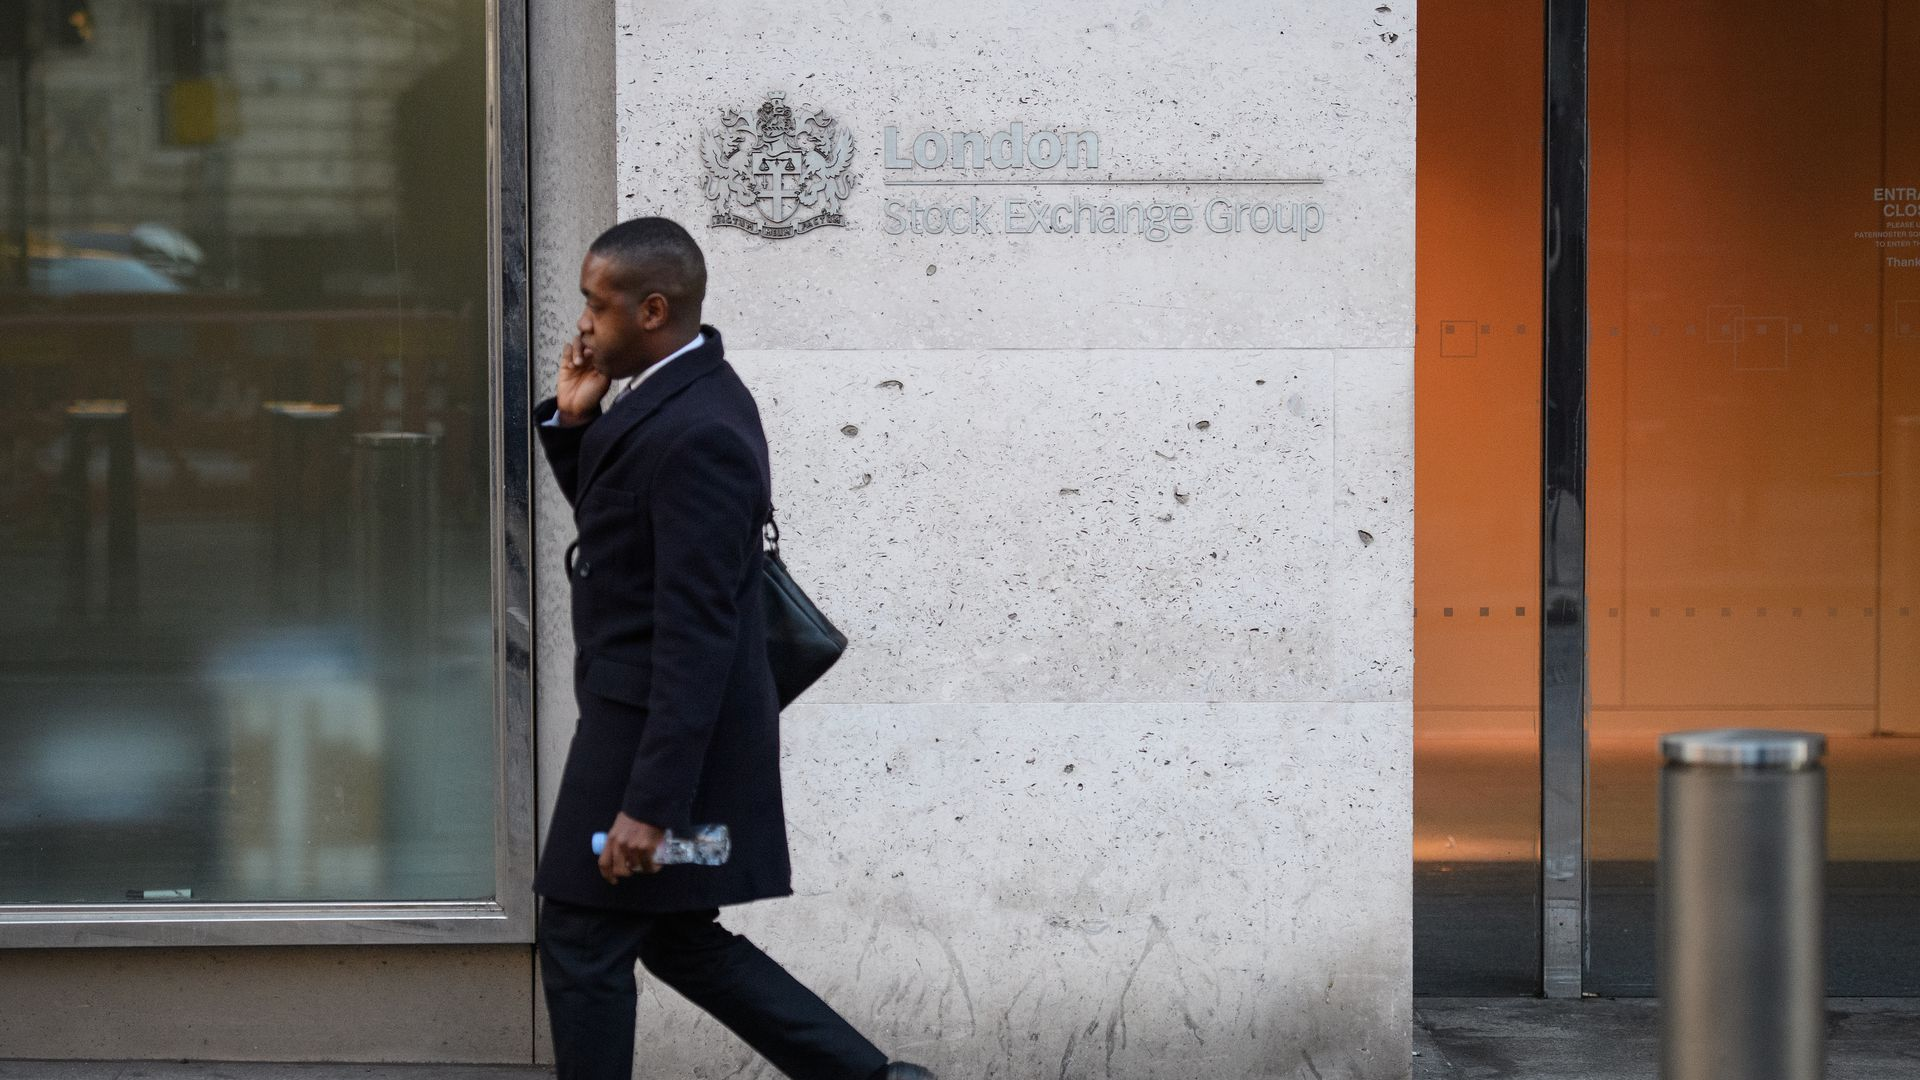 A man walking in front of the London Stock Exchange building